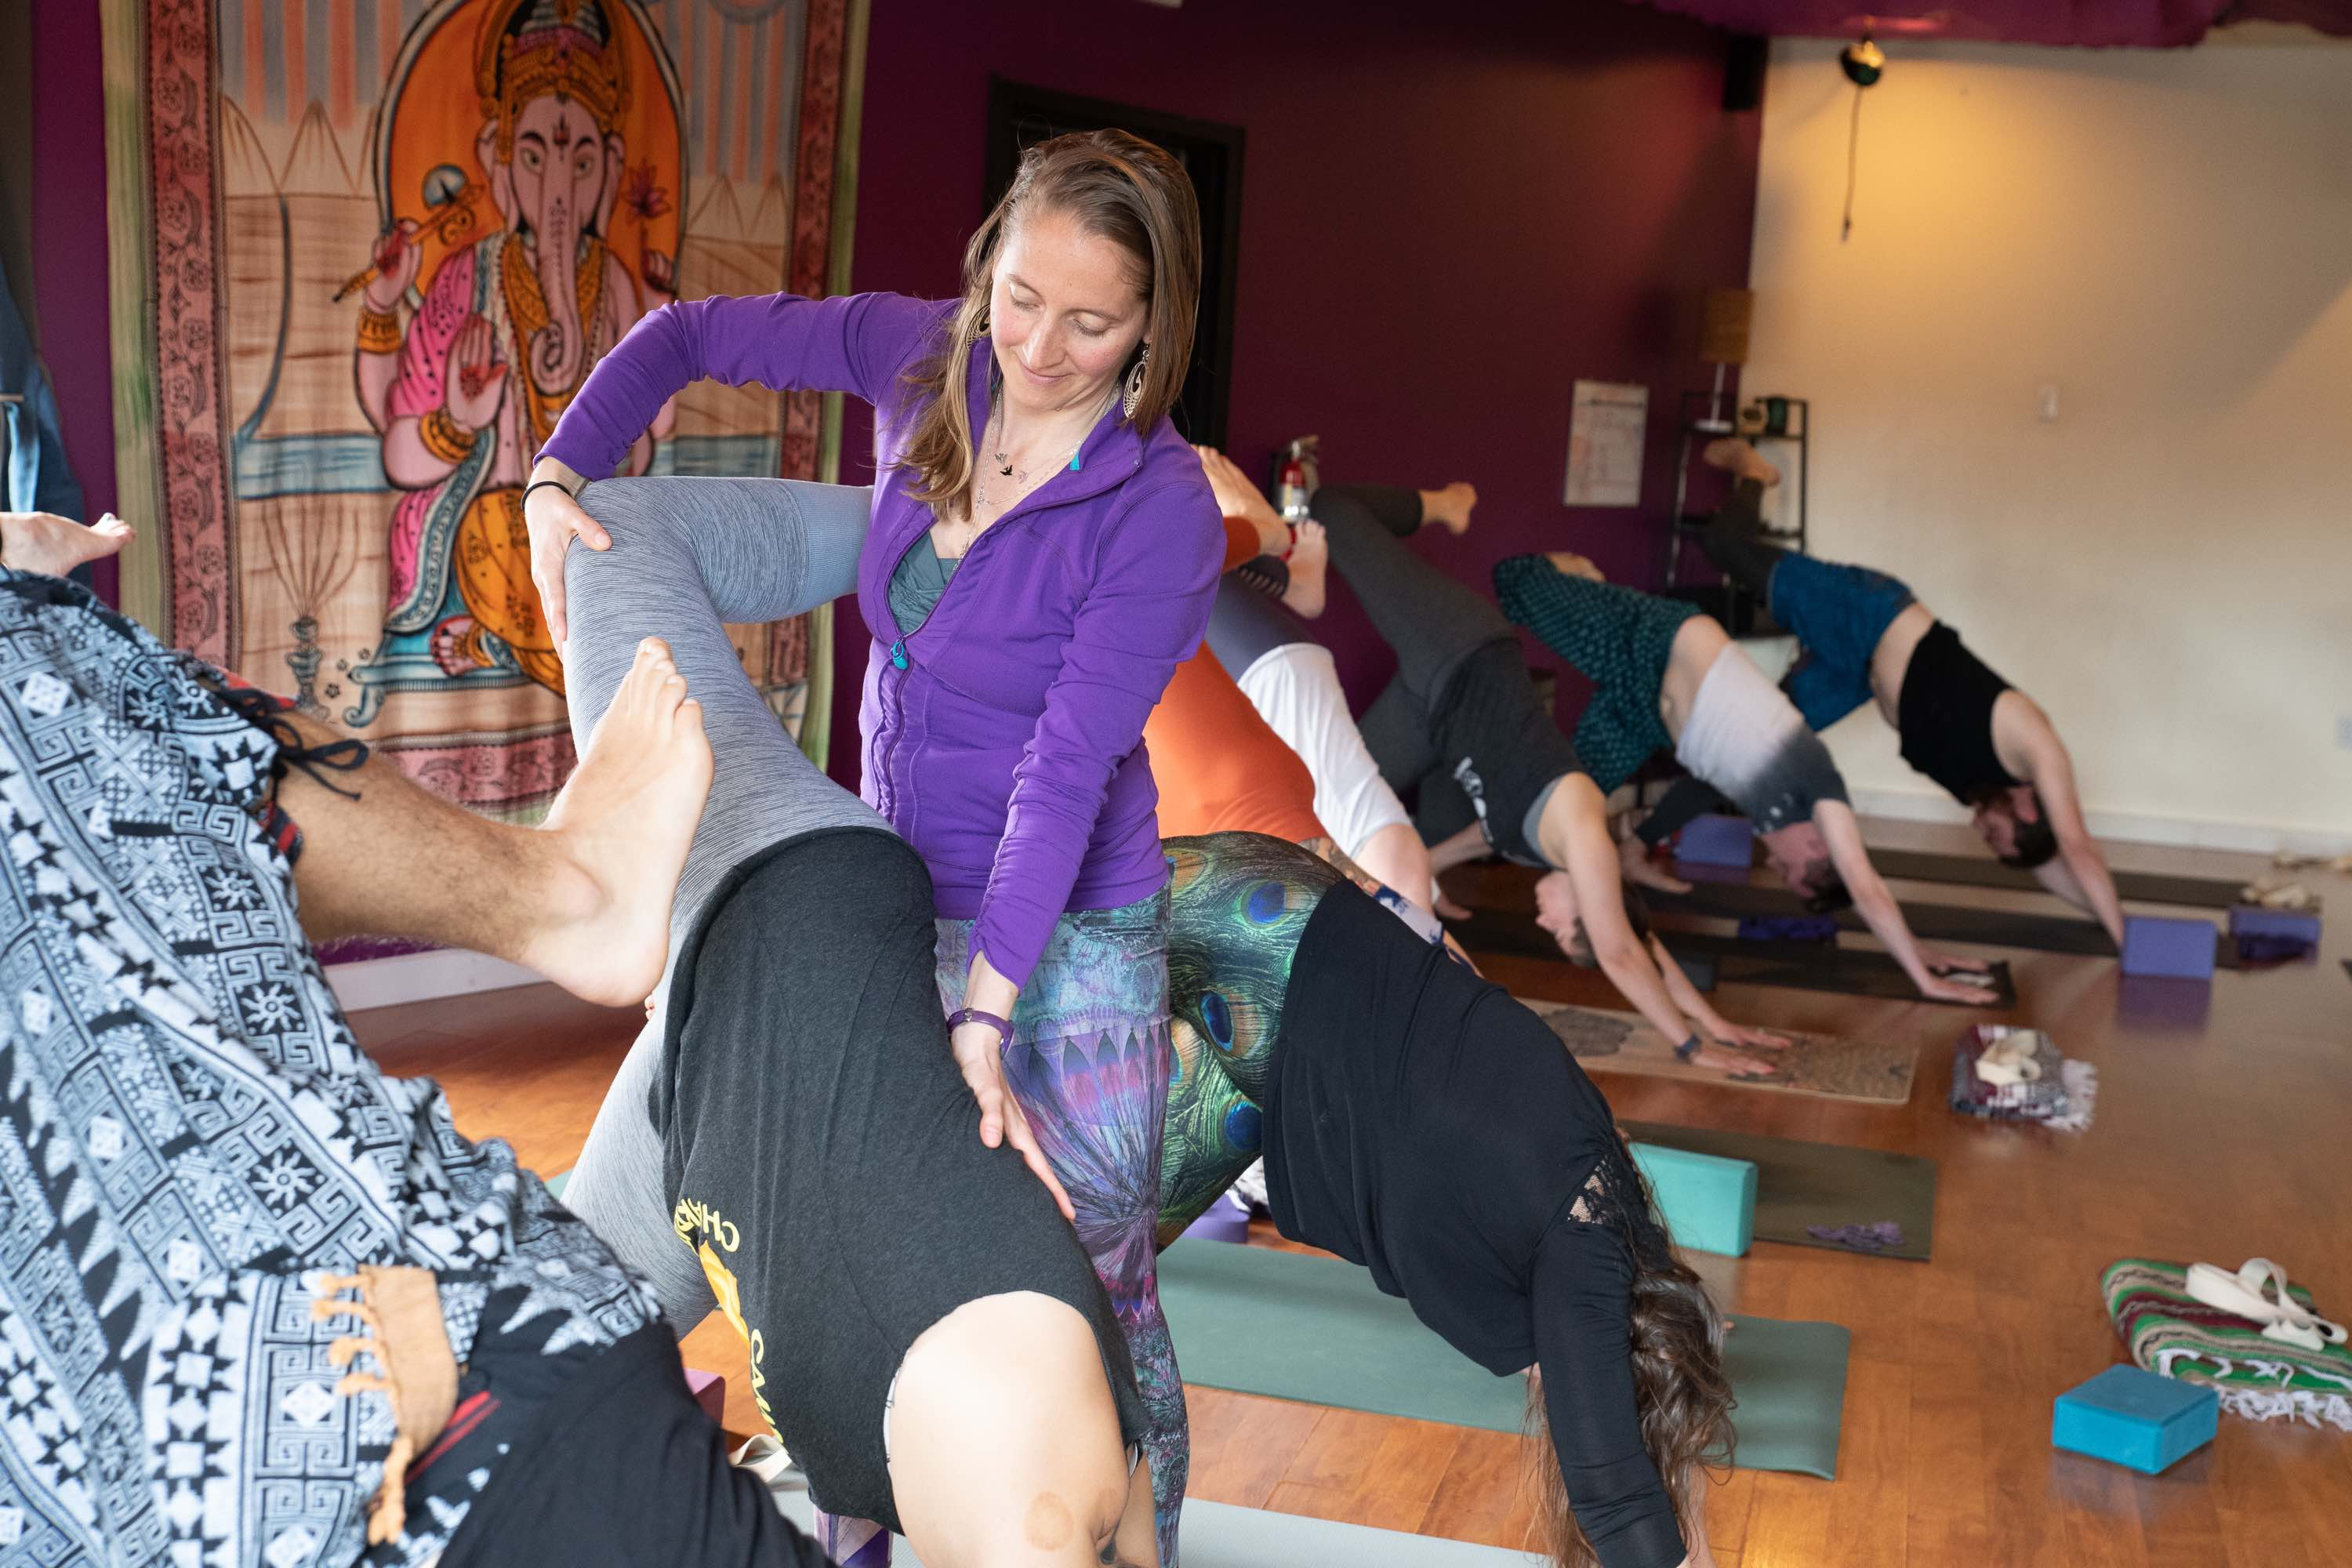 Teacher offers a hands-on adjustment in group yoga class